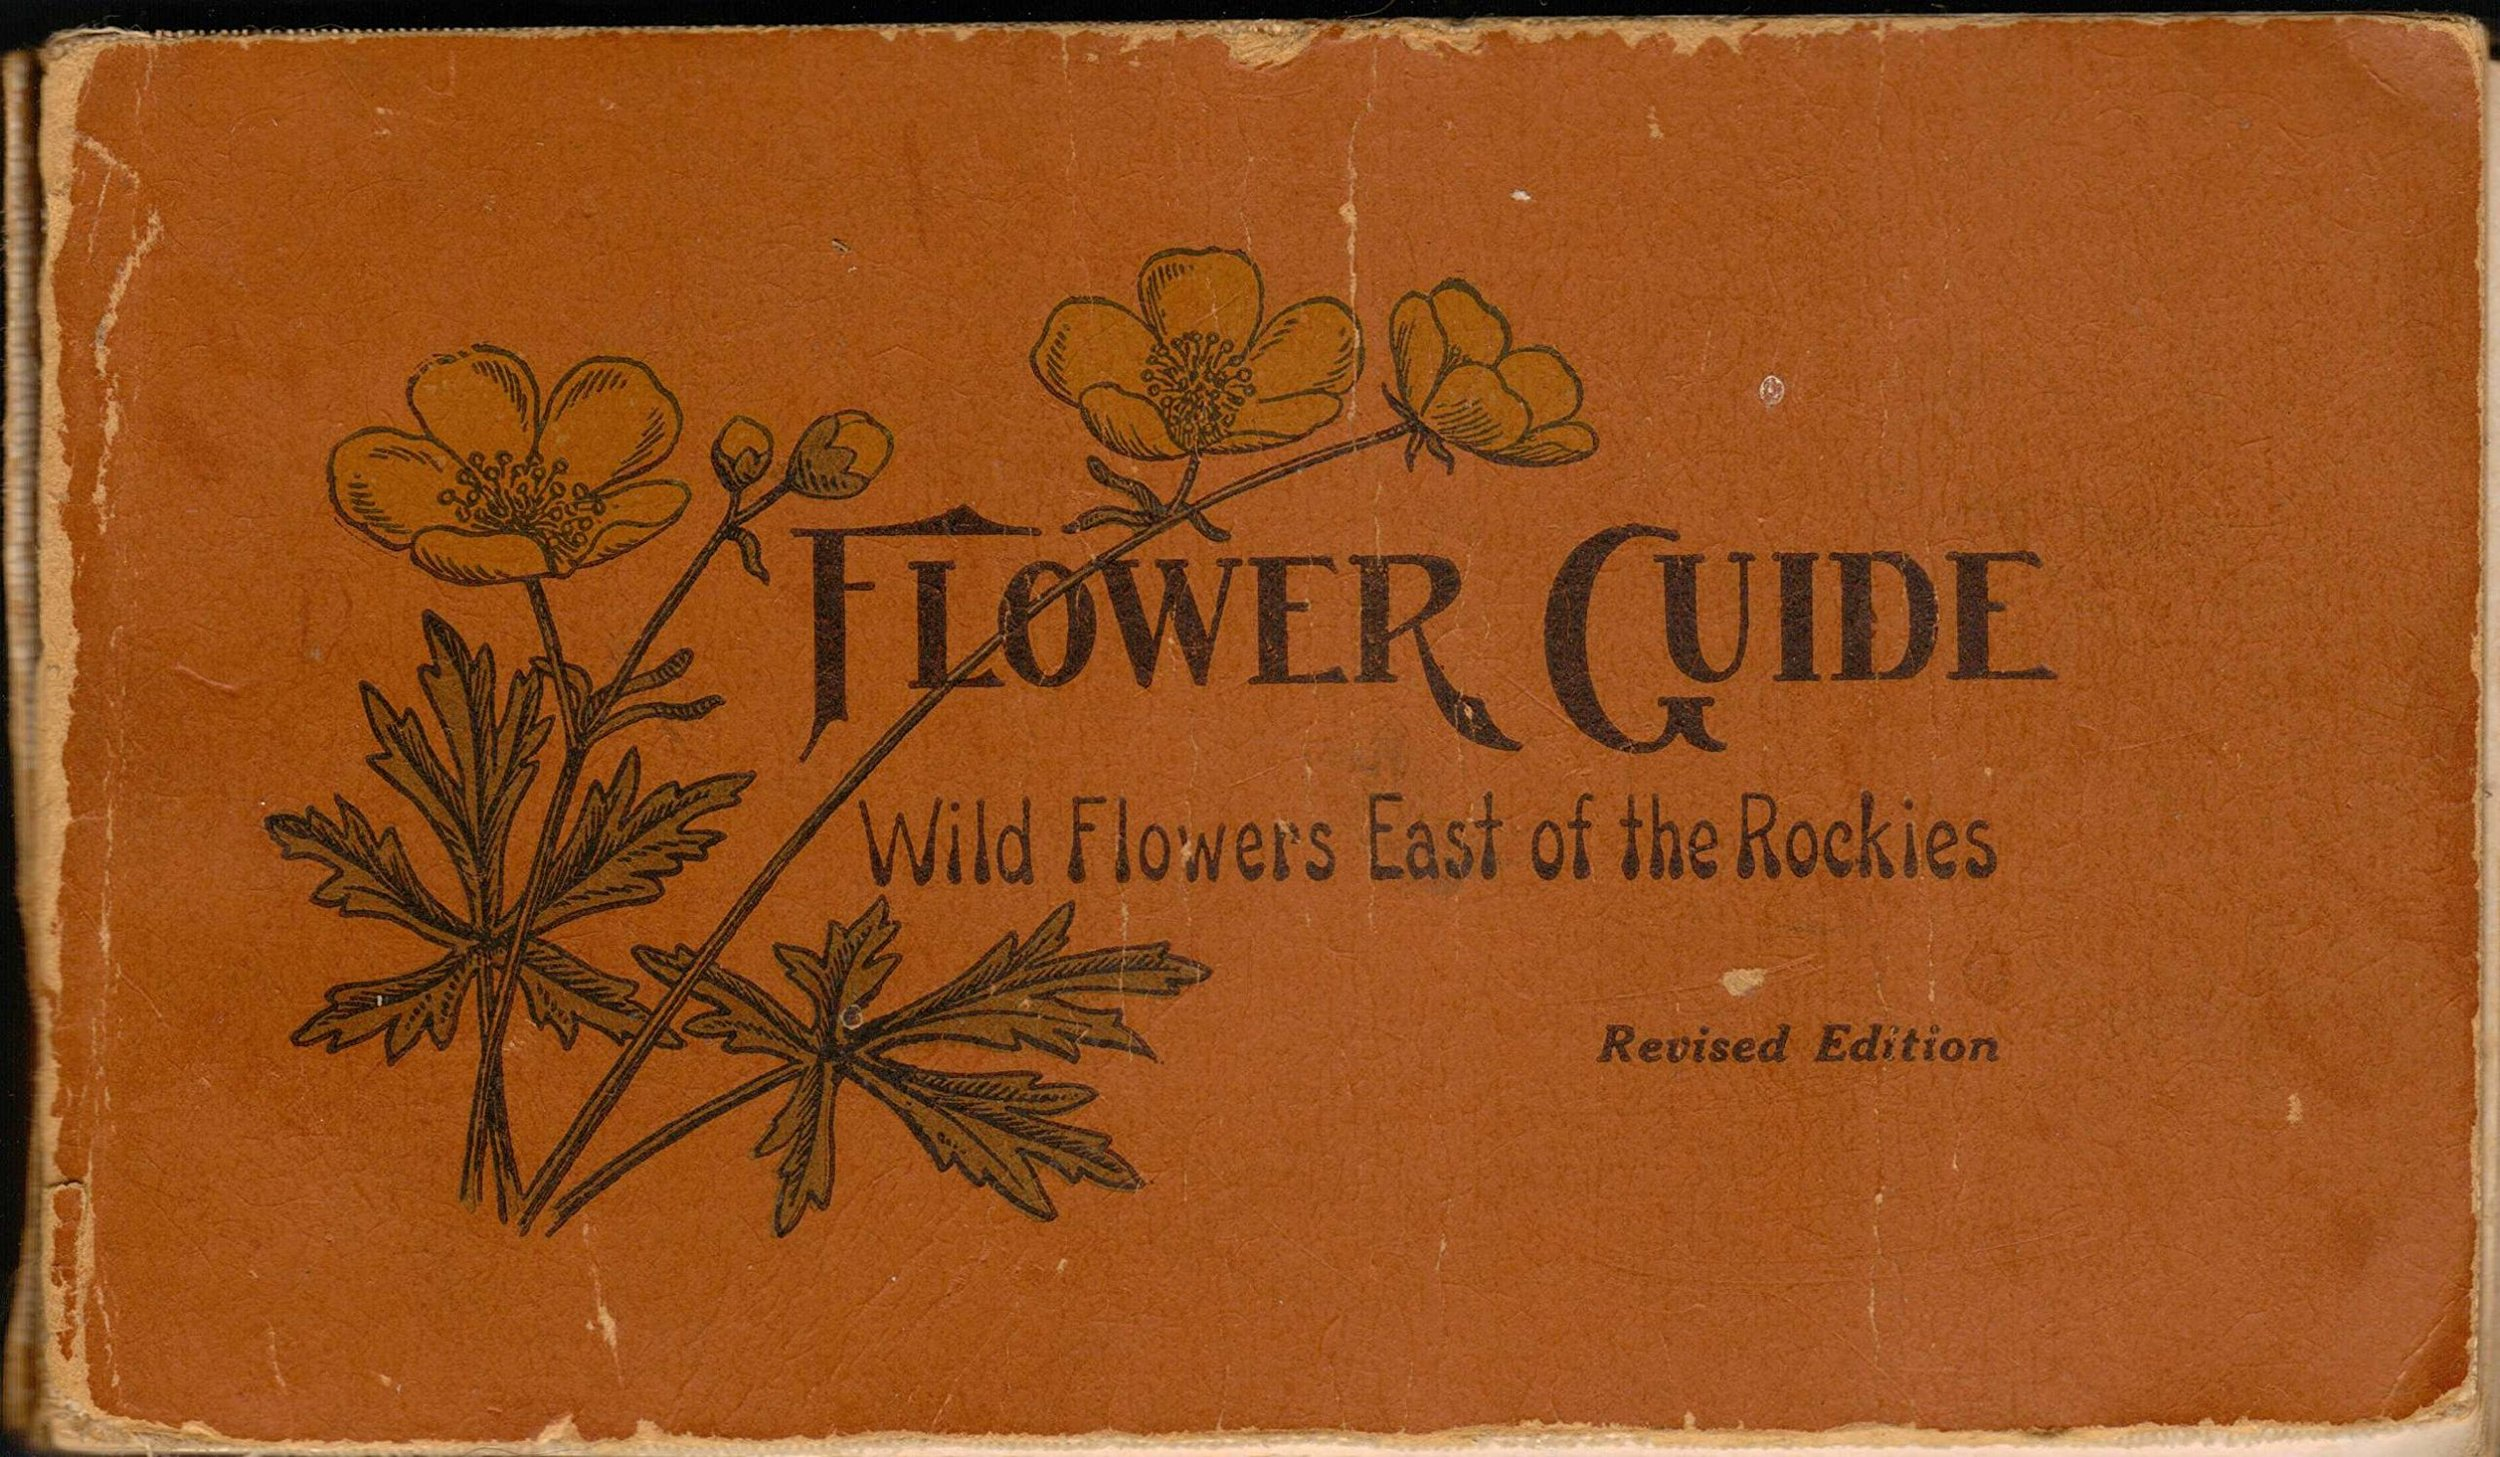 Reed, Chester A.  Flower Guide, Wild Flowers East of the Rockies . Doubleday, Paige & Co., 1926. Image source:    Amazon